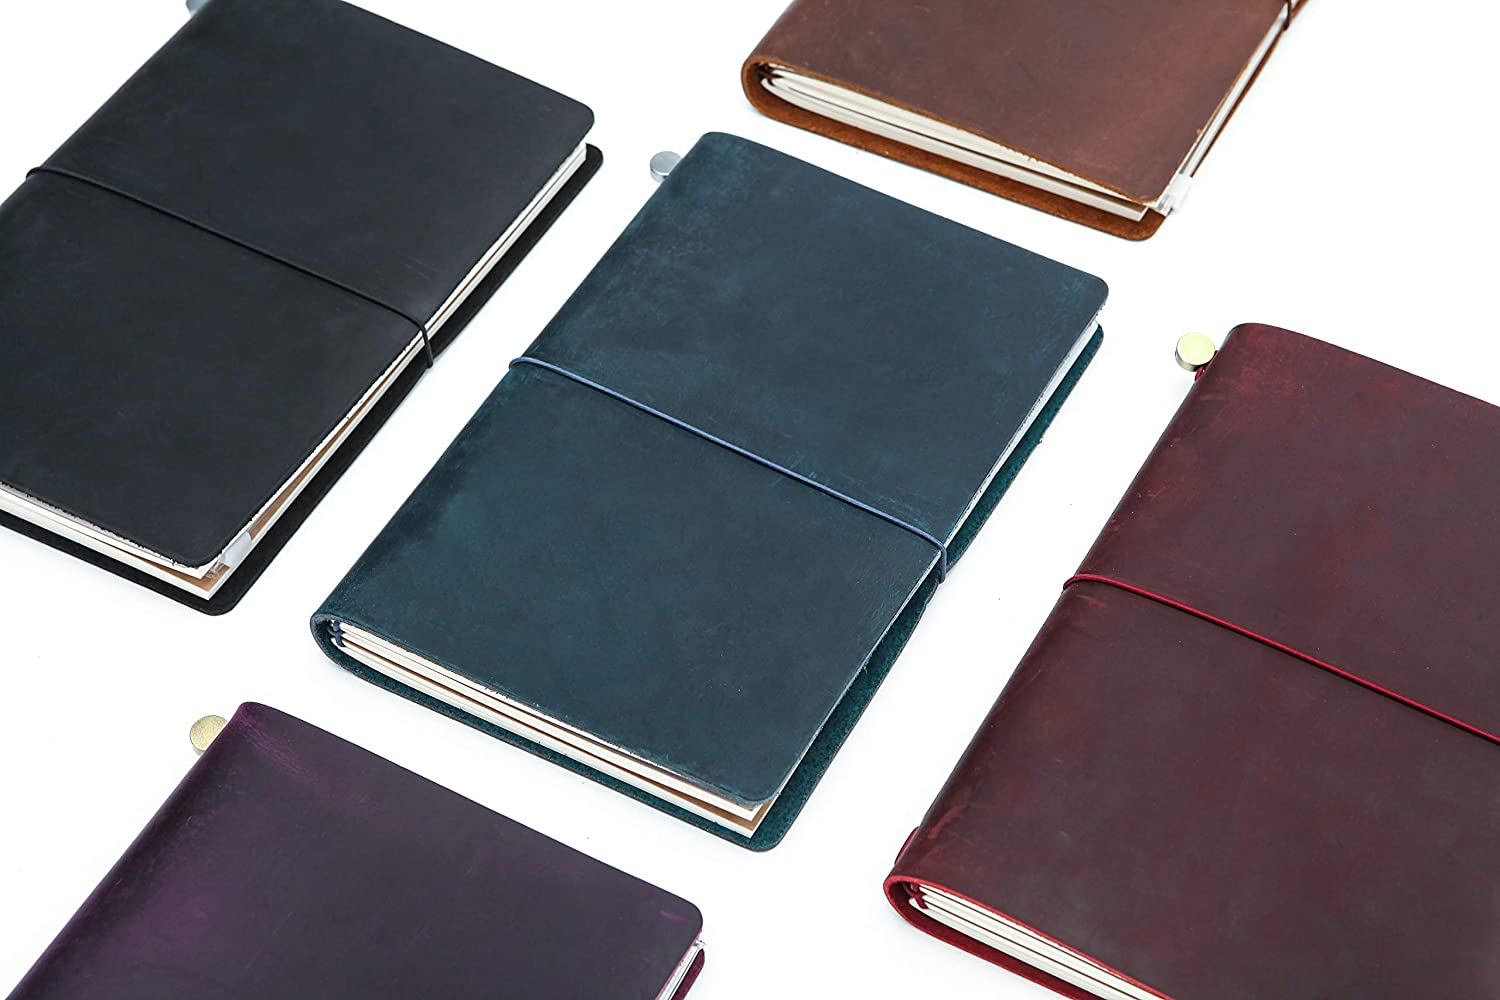 Black Collasaro A5 Travelers Notebook Refillable Genuine Leather Journal for Men Women 8.5x6